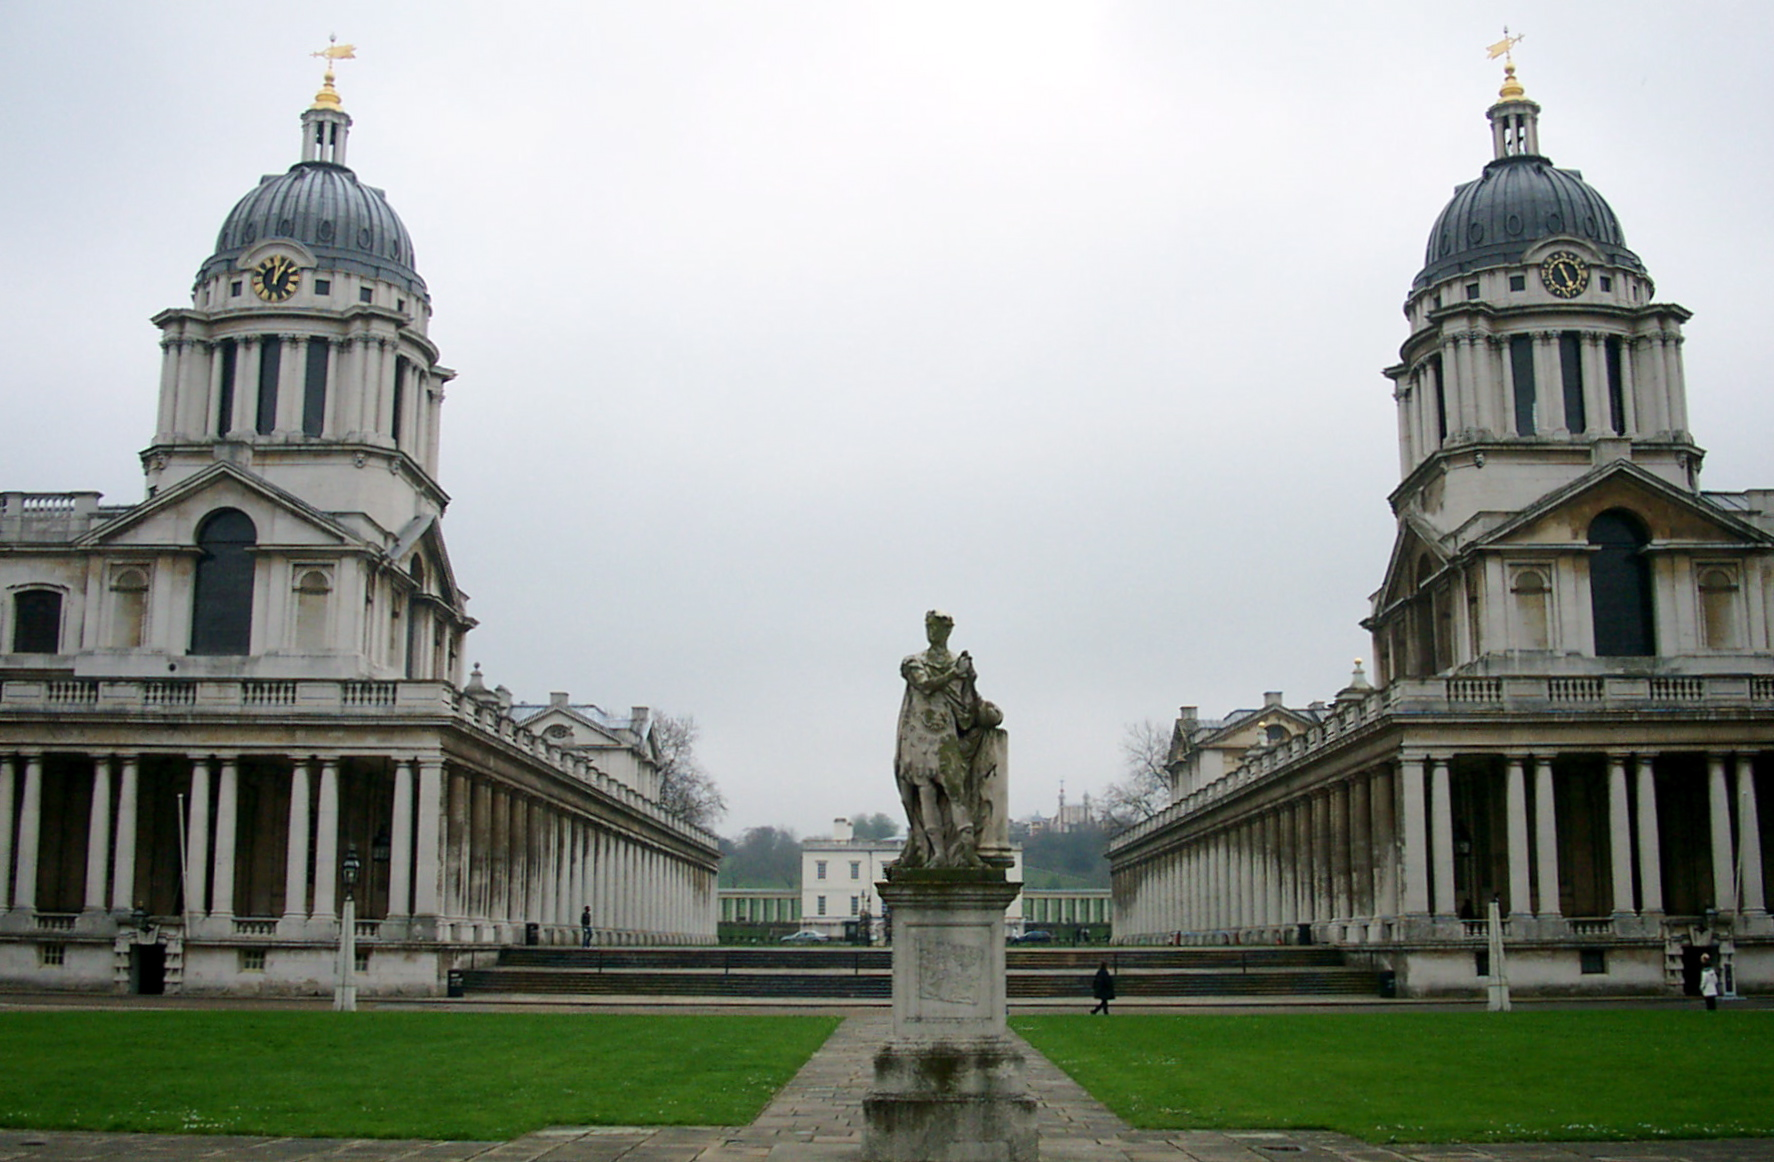 United_Kingdom_-_England_-_London_-_Greenwich_-_Old_Royal_Naval_College.jpg (1774×1162)